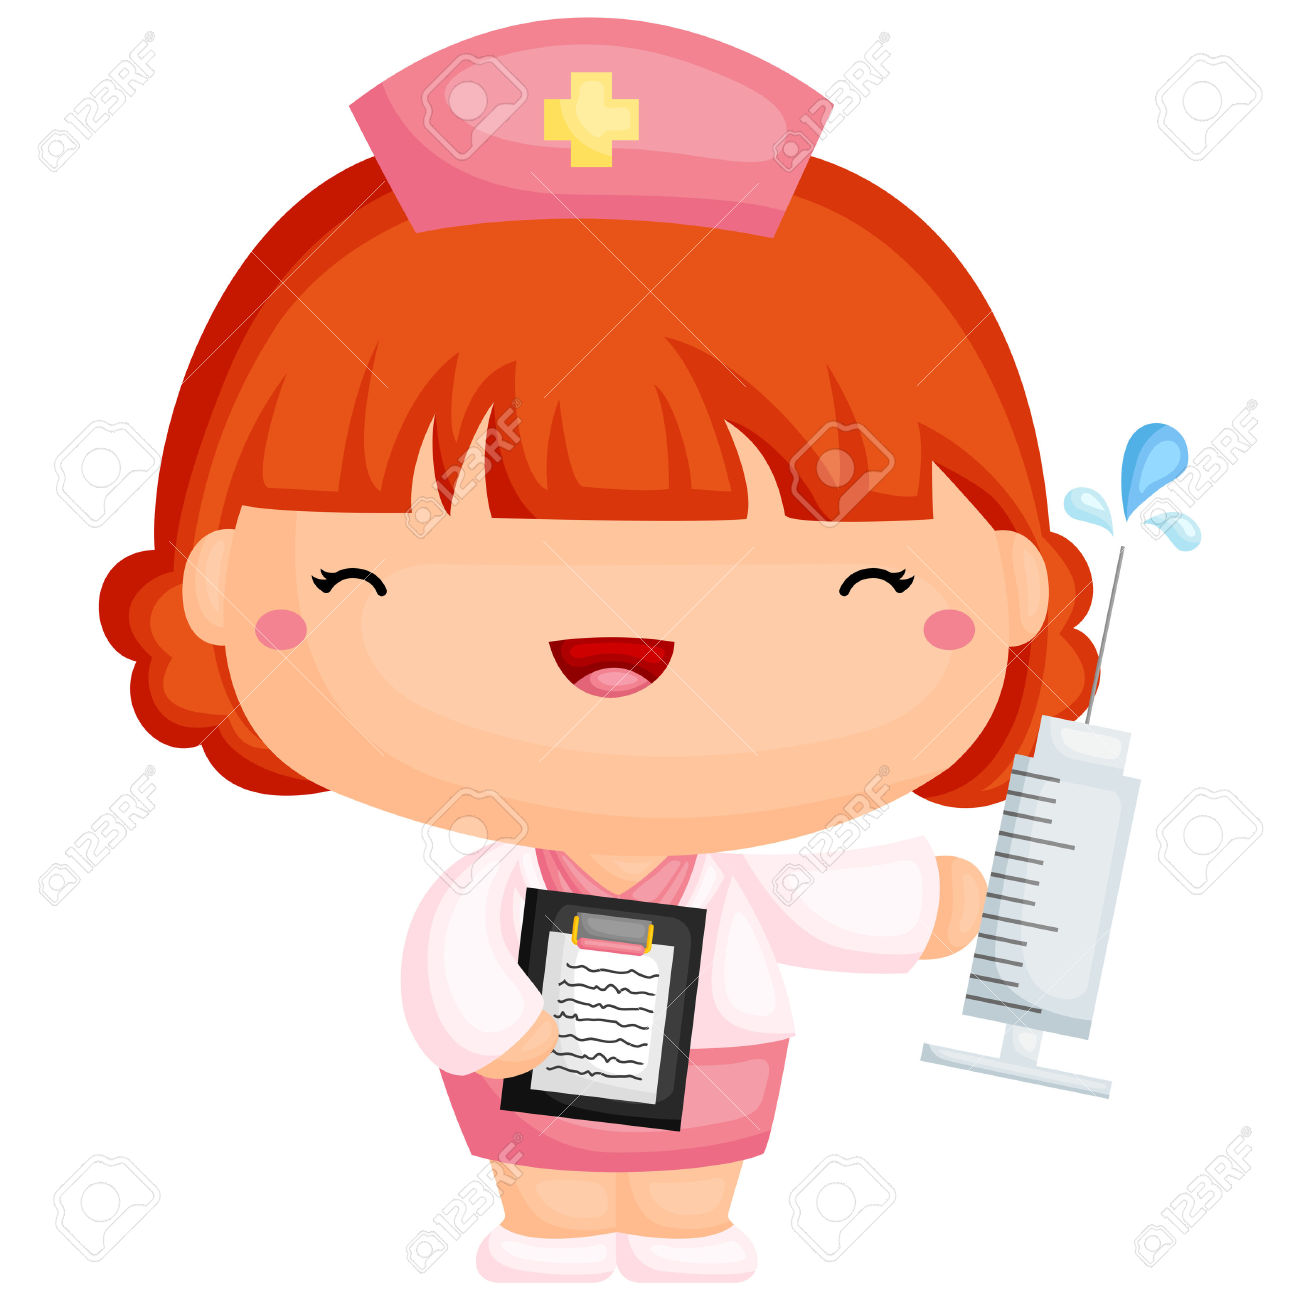 Nurses Stock Photos Images. Royalty Free Nurses Images And Pictures.